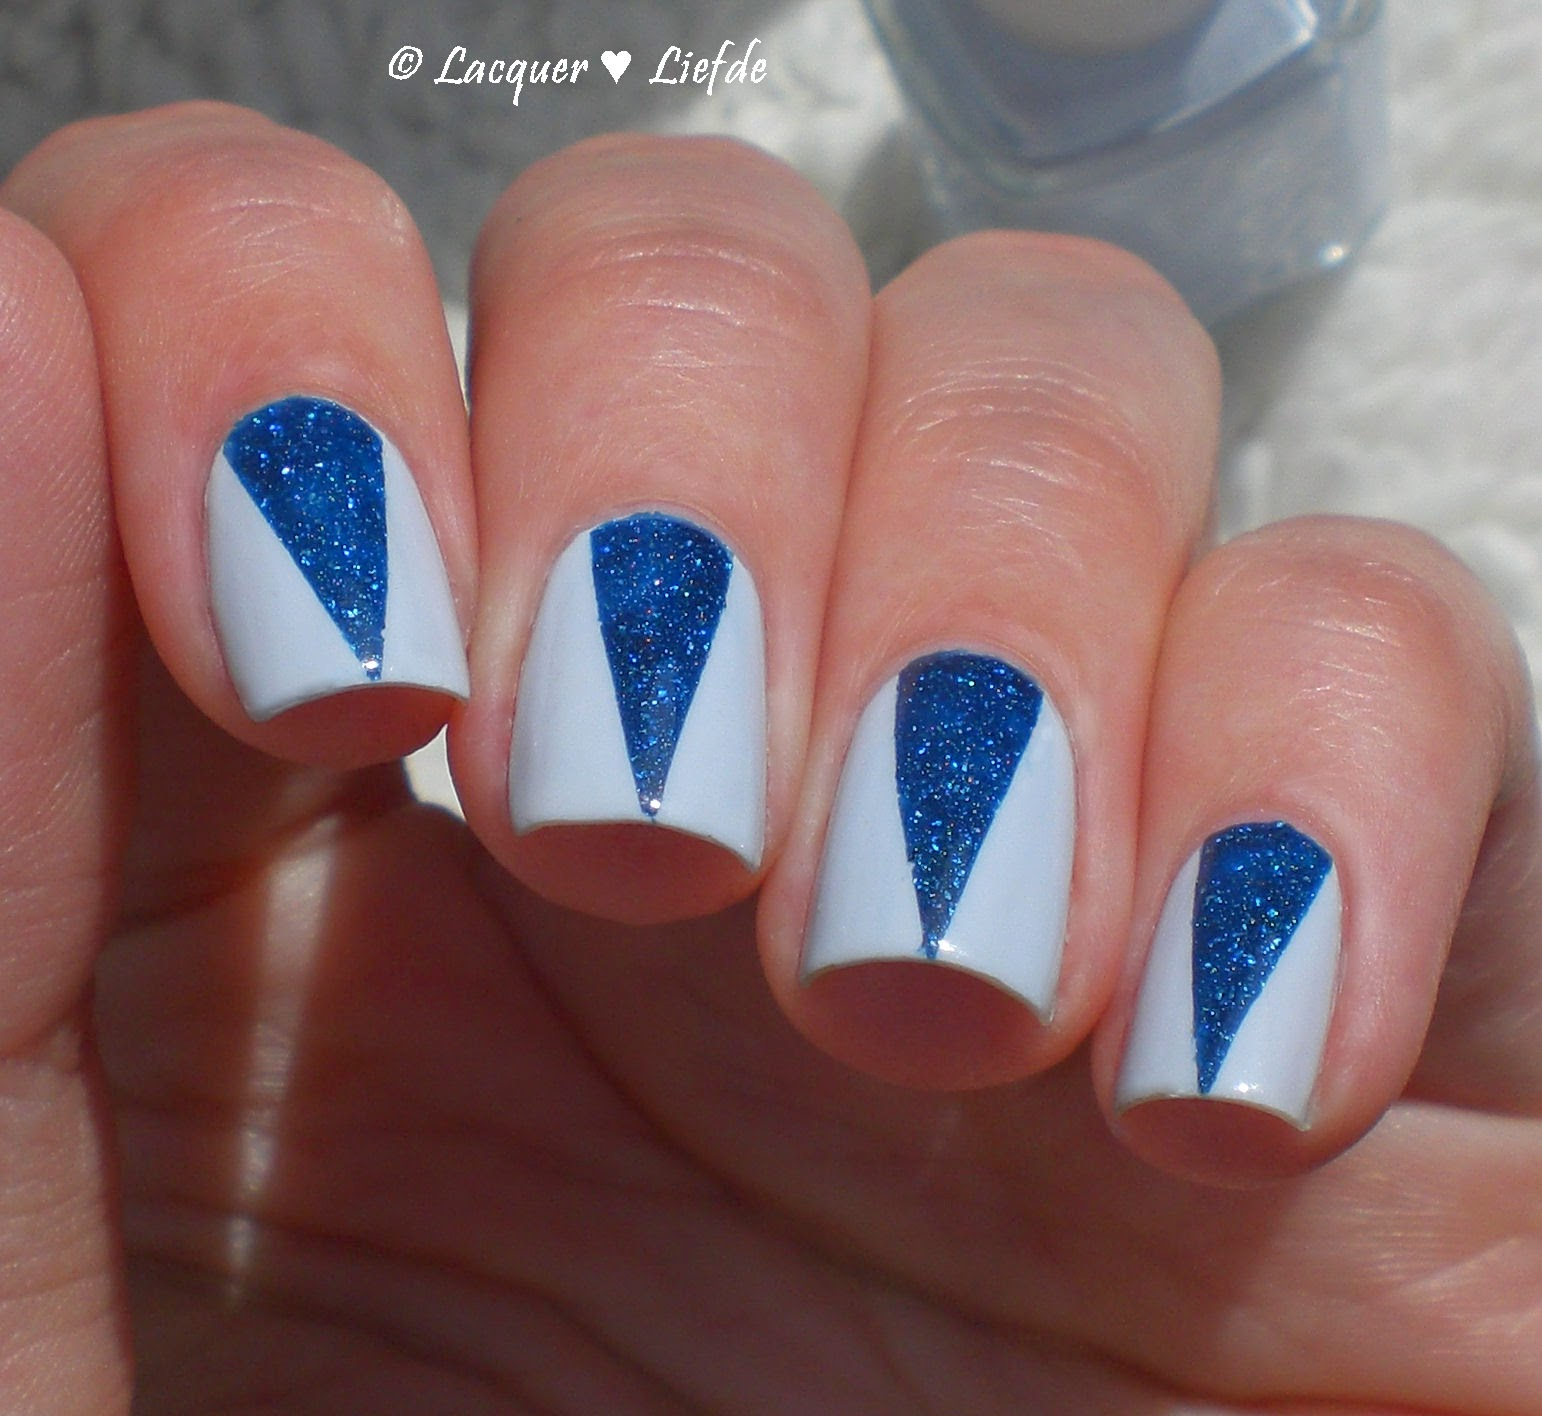 Find me an Oasis Essie mit Cosmos Picture Polish